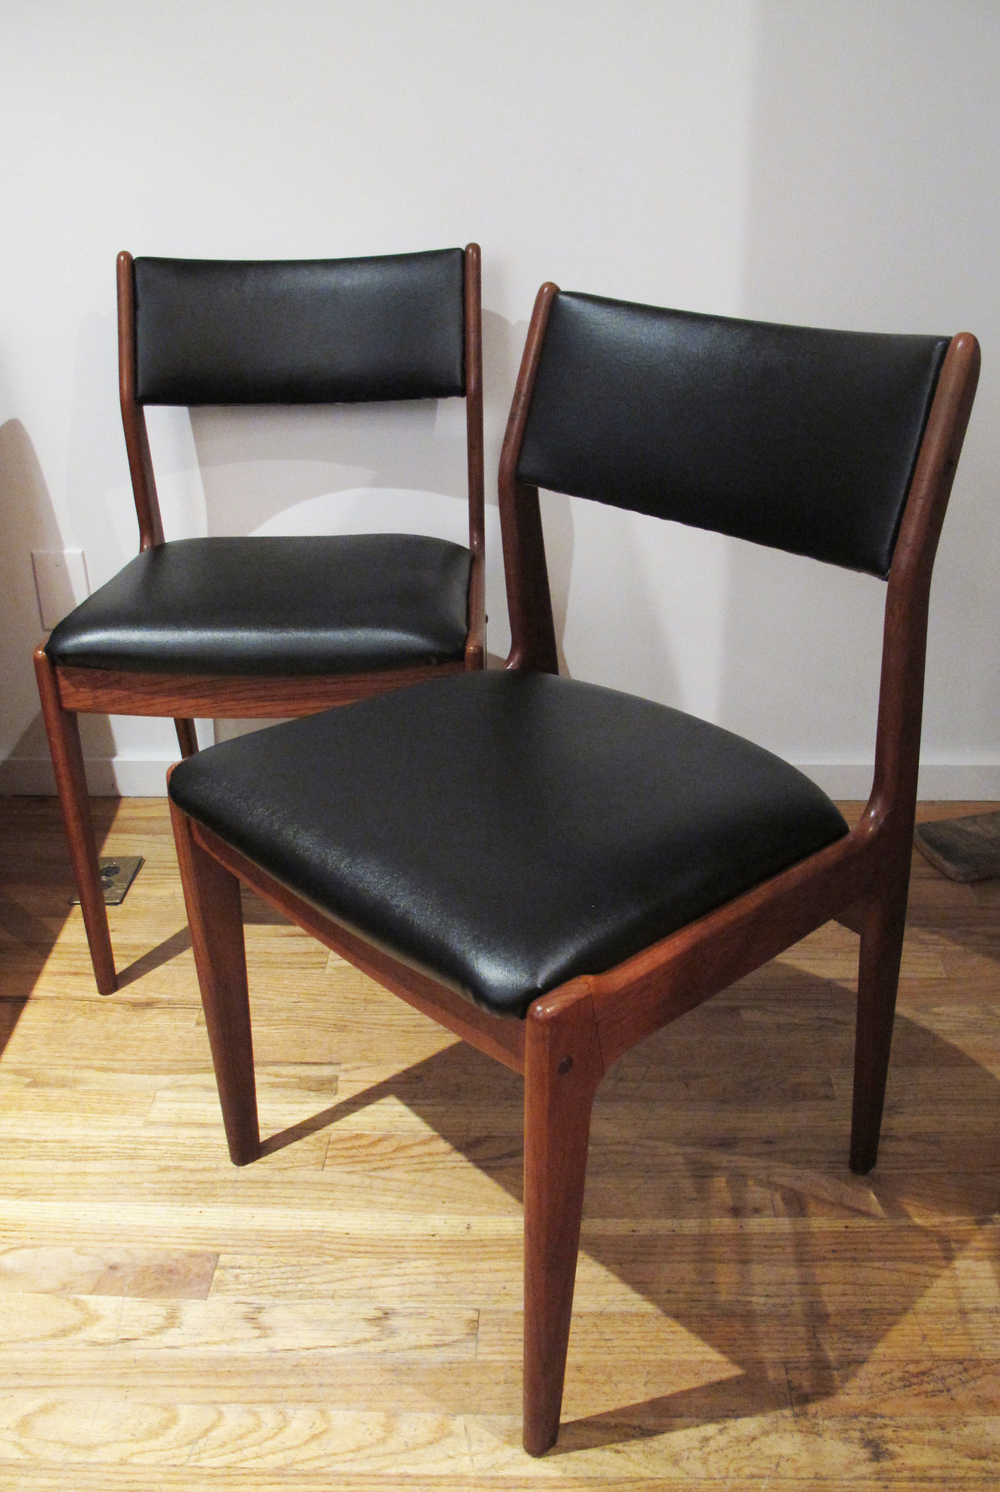 PAIR OF DANISH MODERN TEAK DINING SIDE CHAIRS